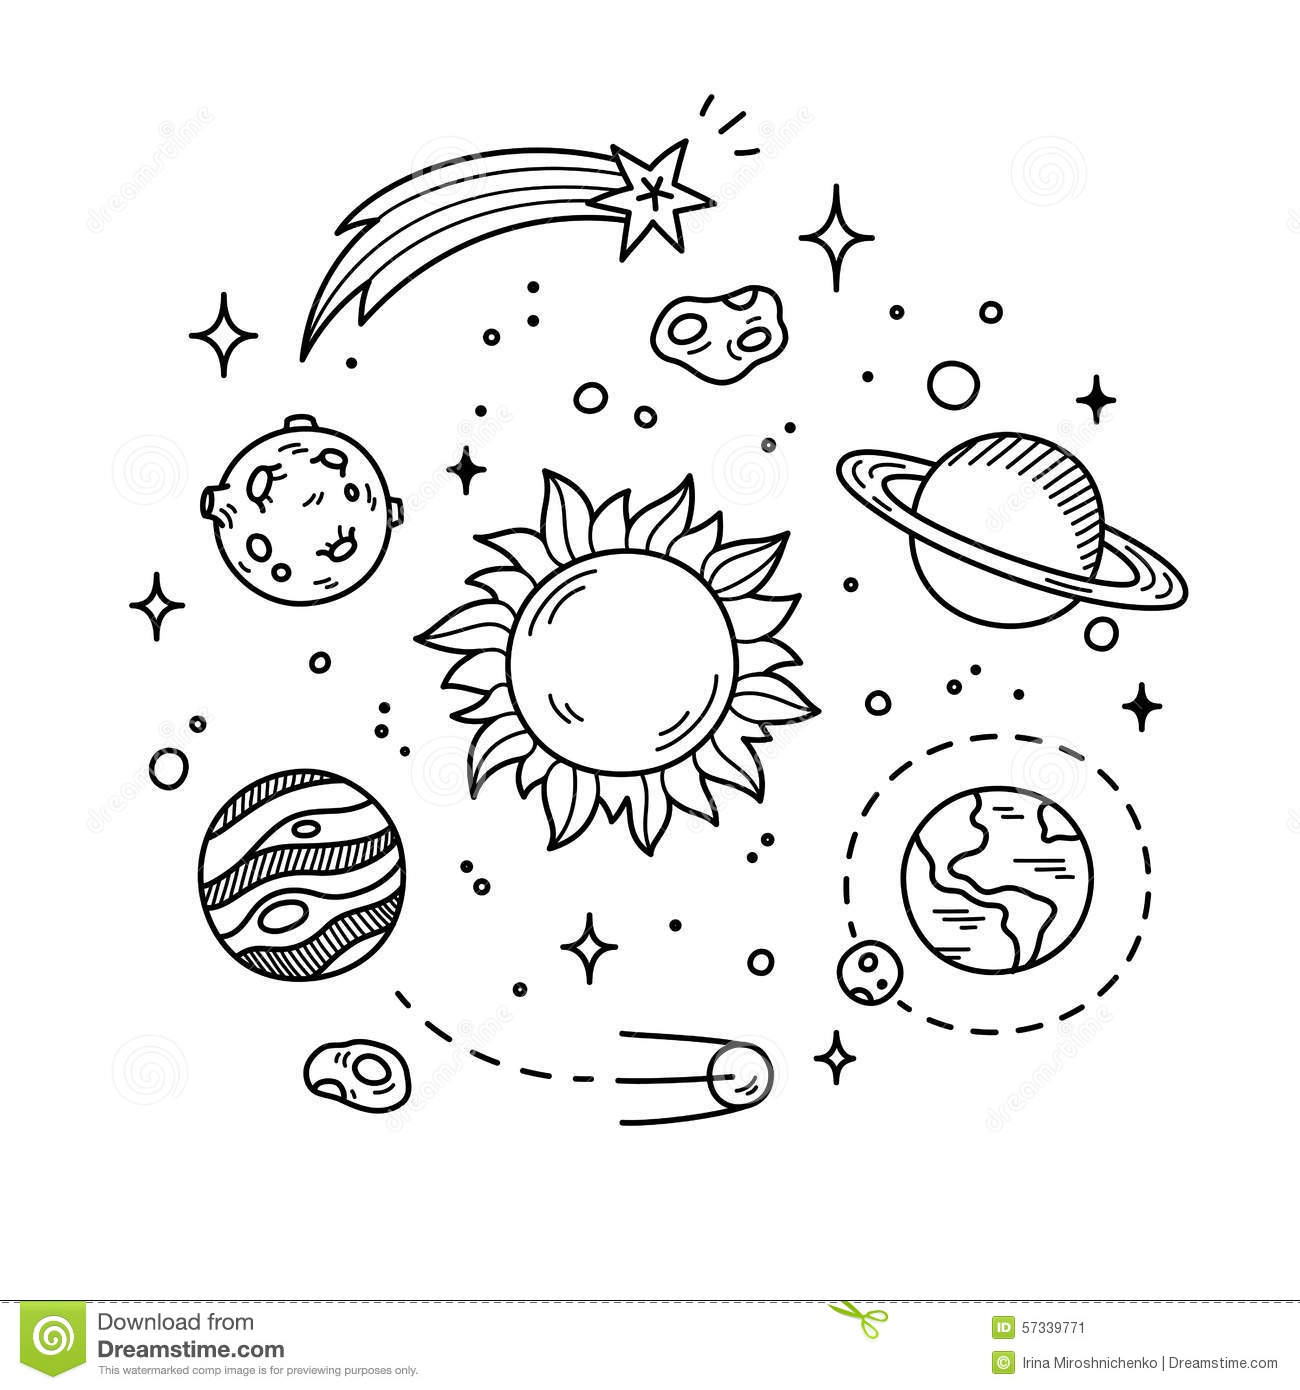 ... other outer space objects. Cute and decorative doodle style line art